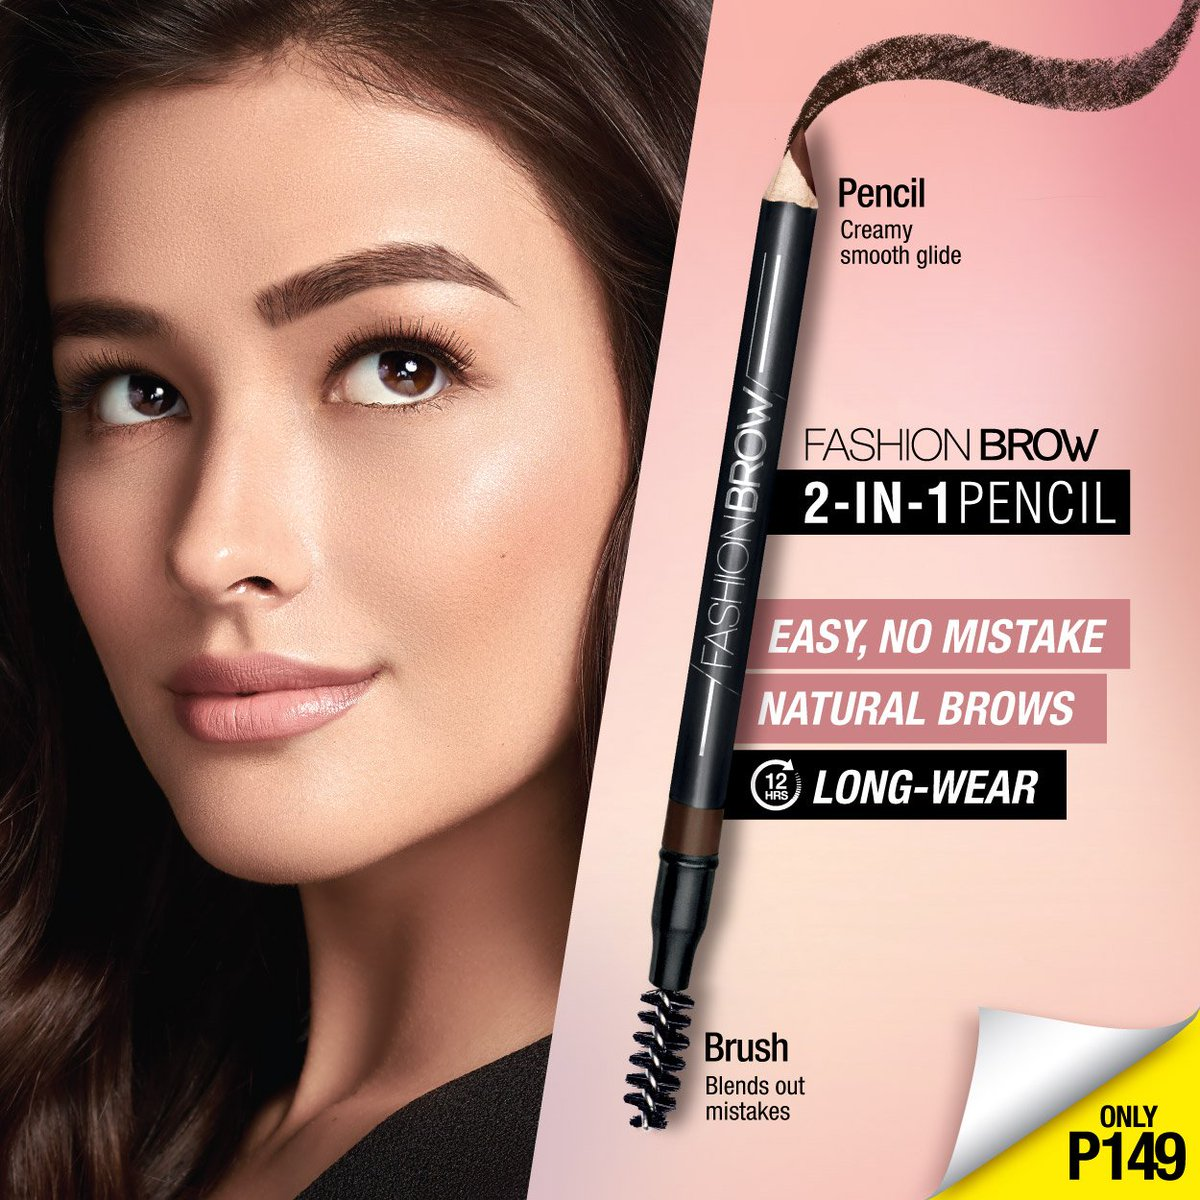 Maybelline Ph On Twitter Liza Is In Love With Her New Favorite